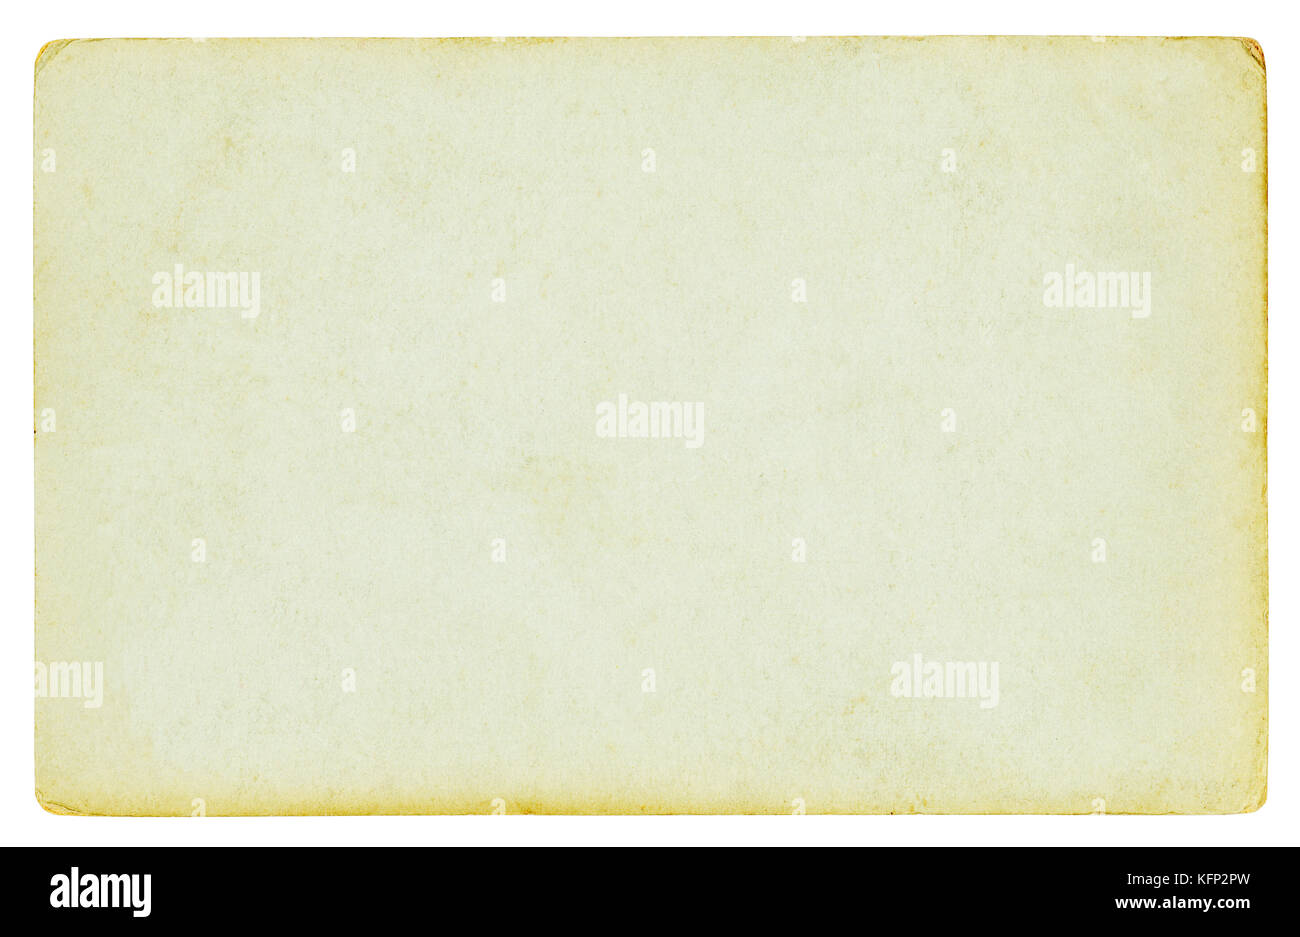 Vintage paper background isolated - clipping path included - Stock Image